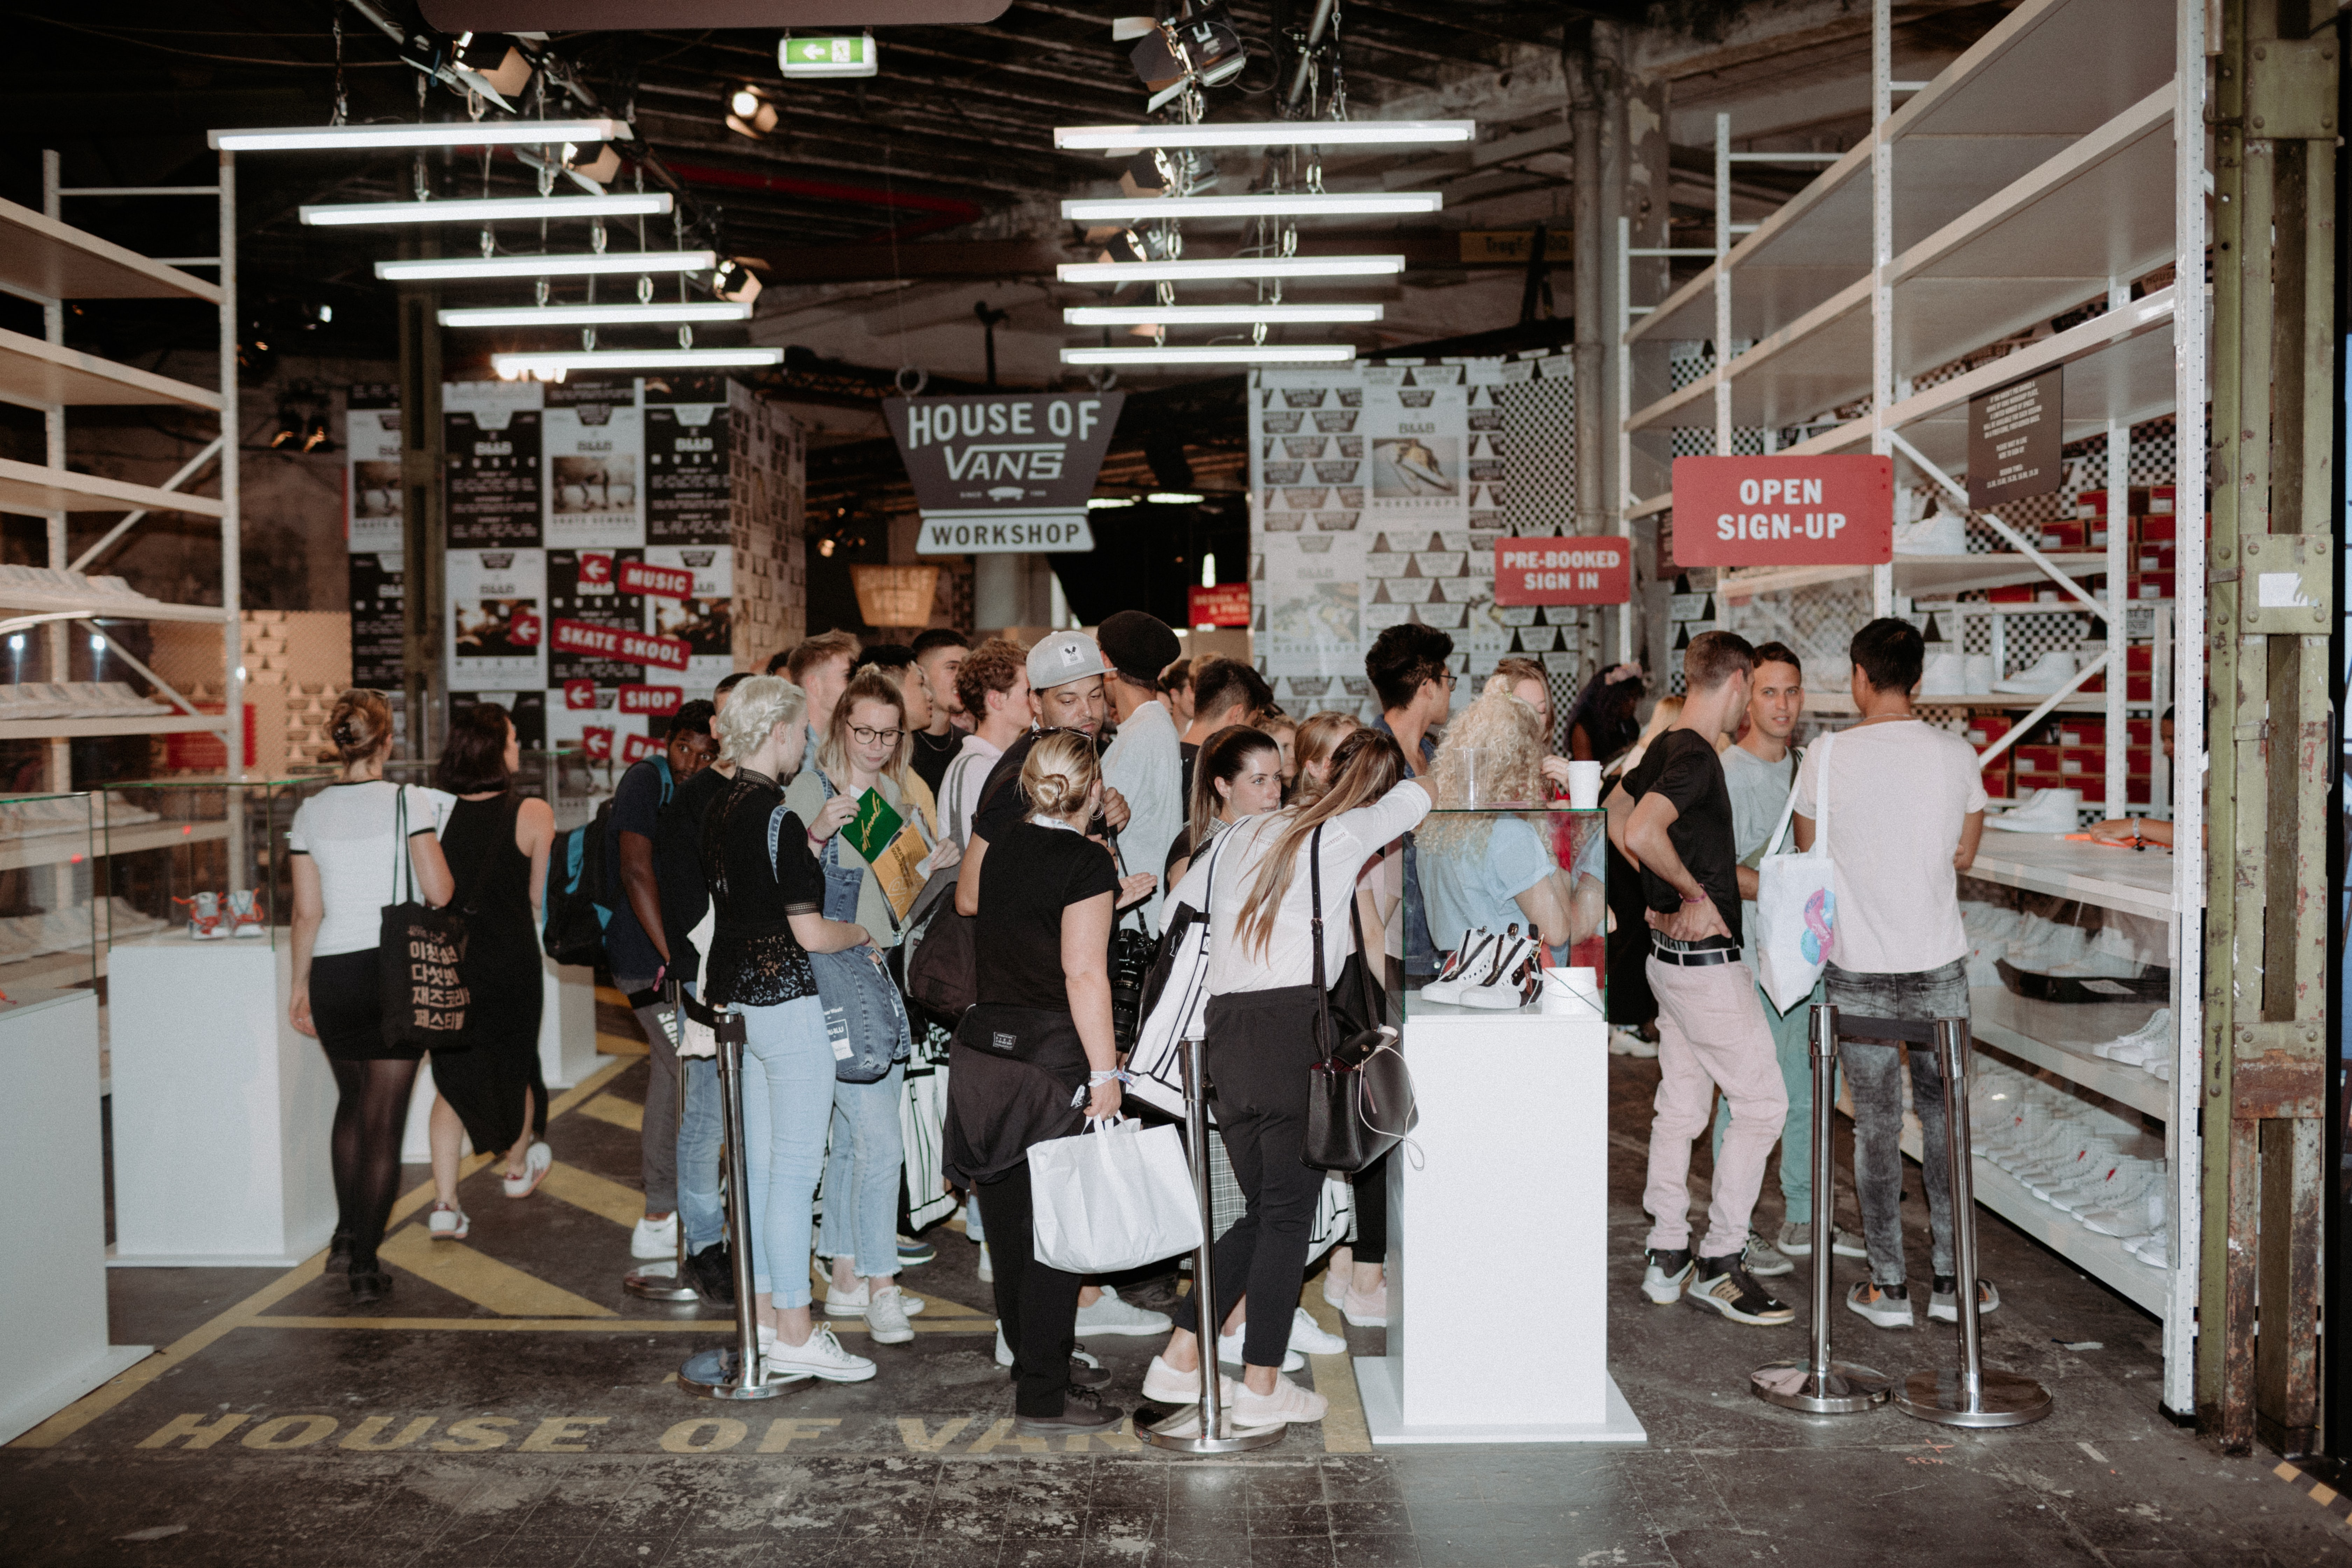 Vans at Bread & Butter by Zalando | Source: Courtesy